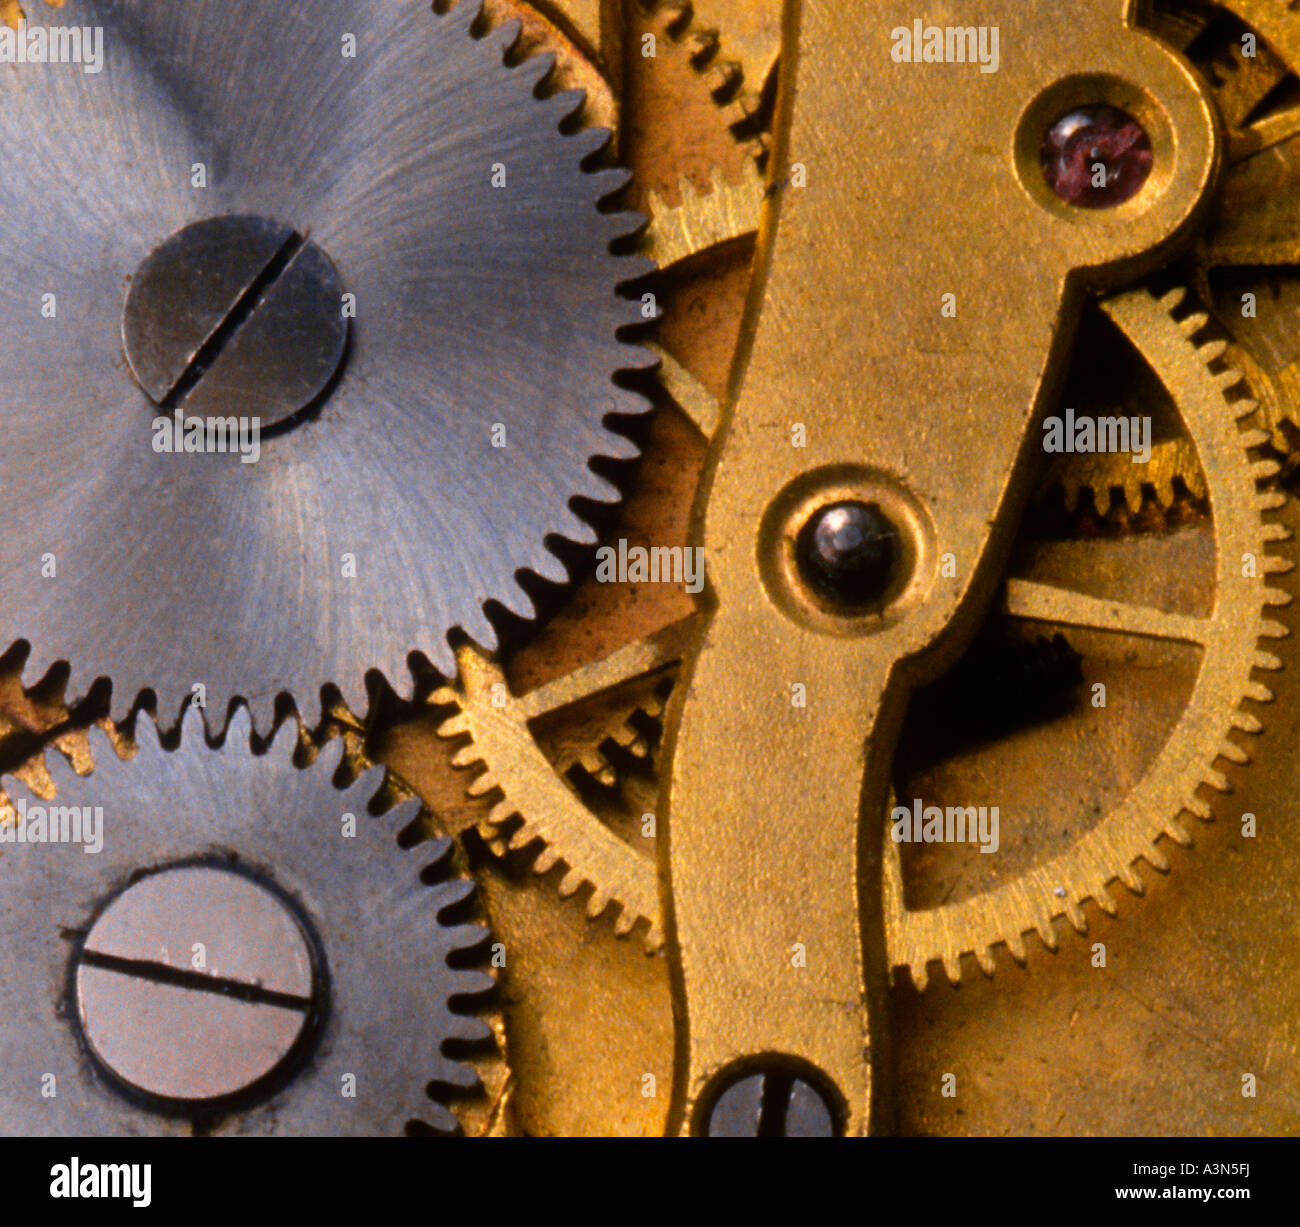 Clock Interior Gears Detail Close-up Working Mechanical Parts Sandra Baker Stock Photo